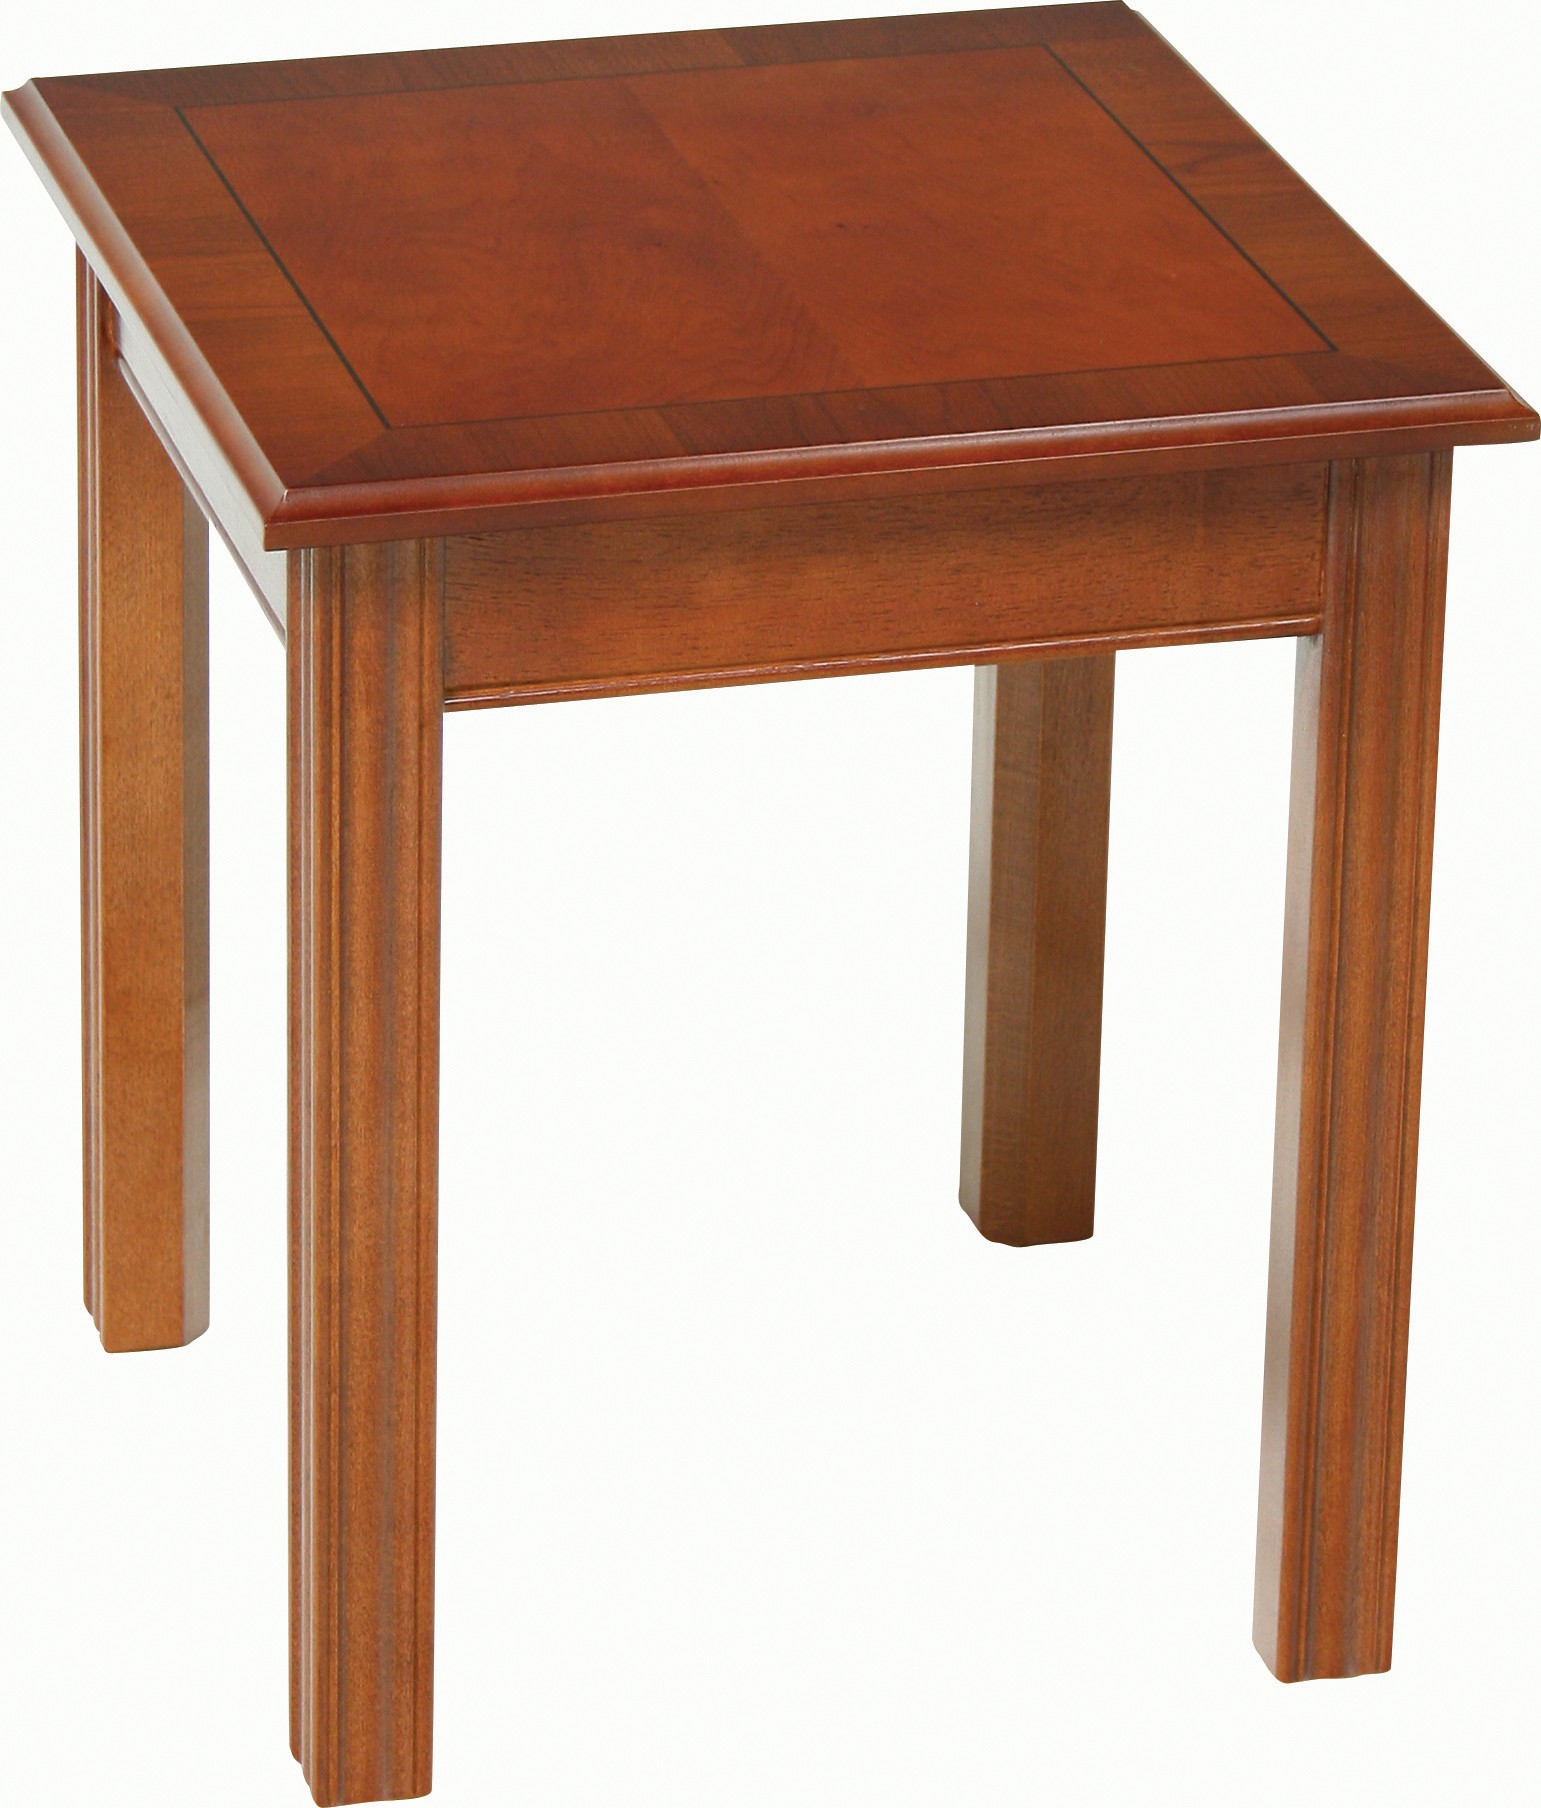 Chippendale Small Coffee Table All Products